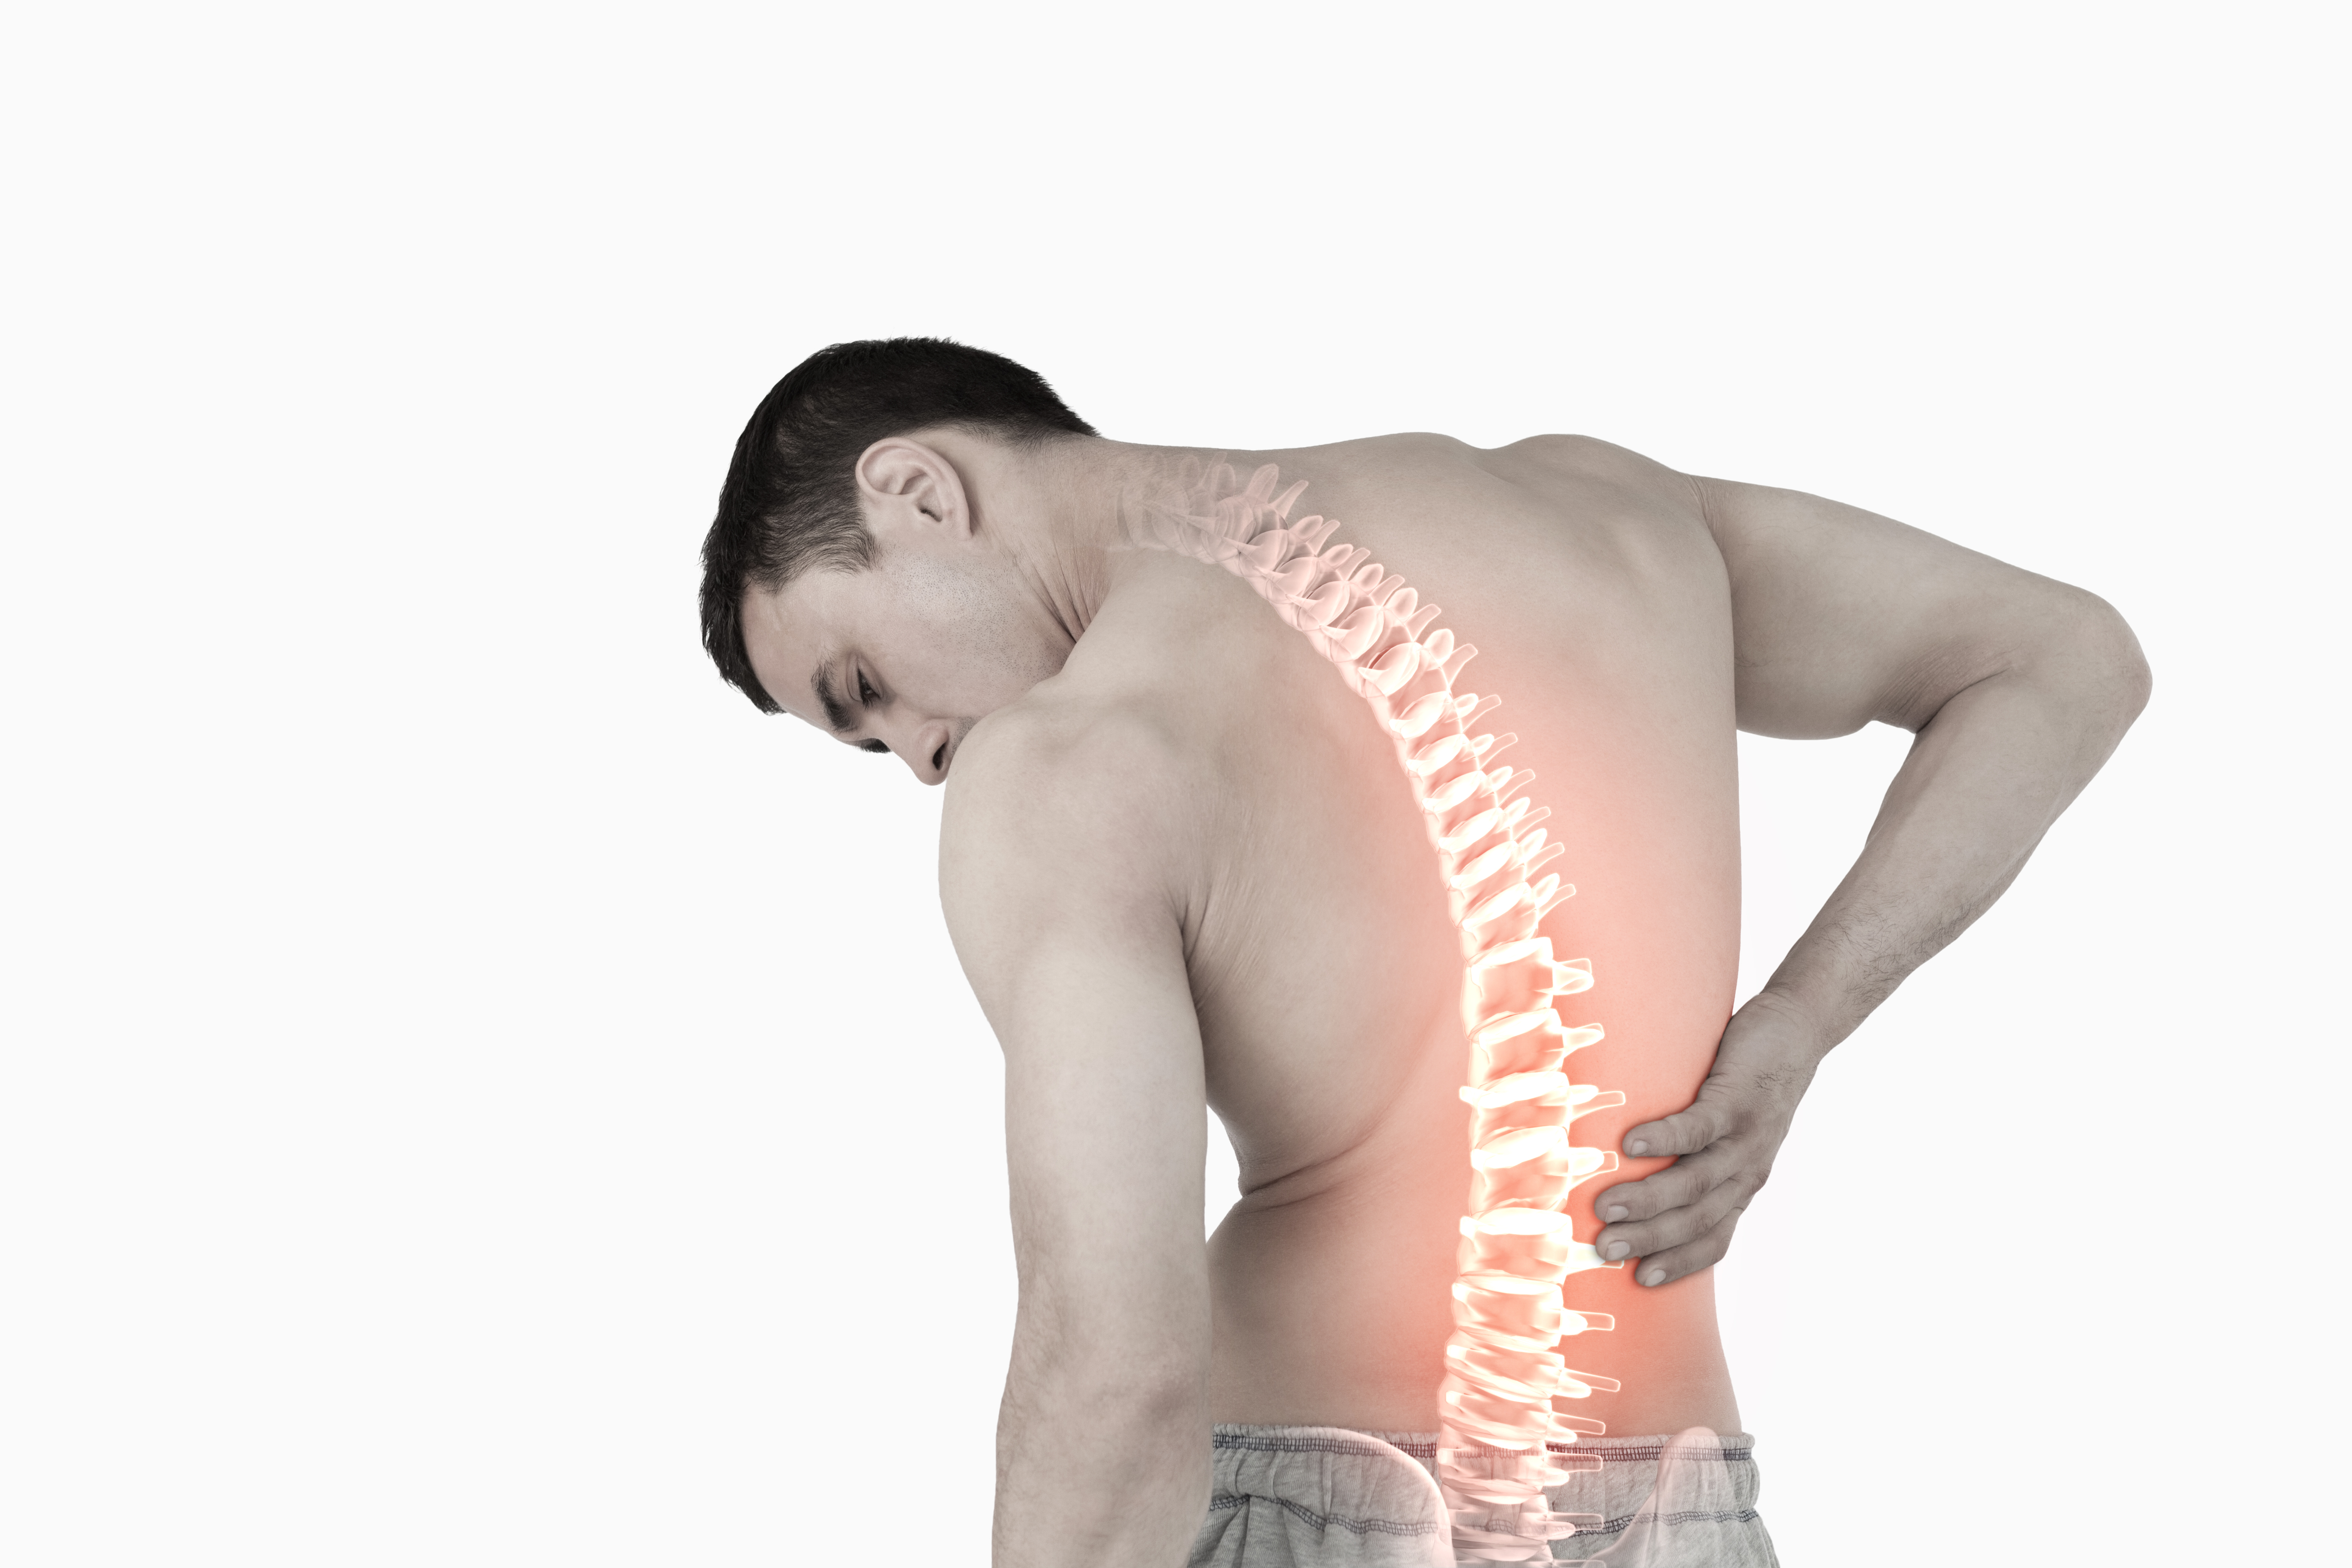 Initial Chiropractic Assessment